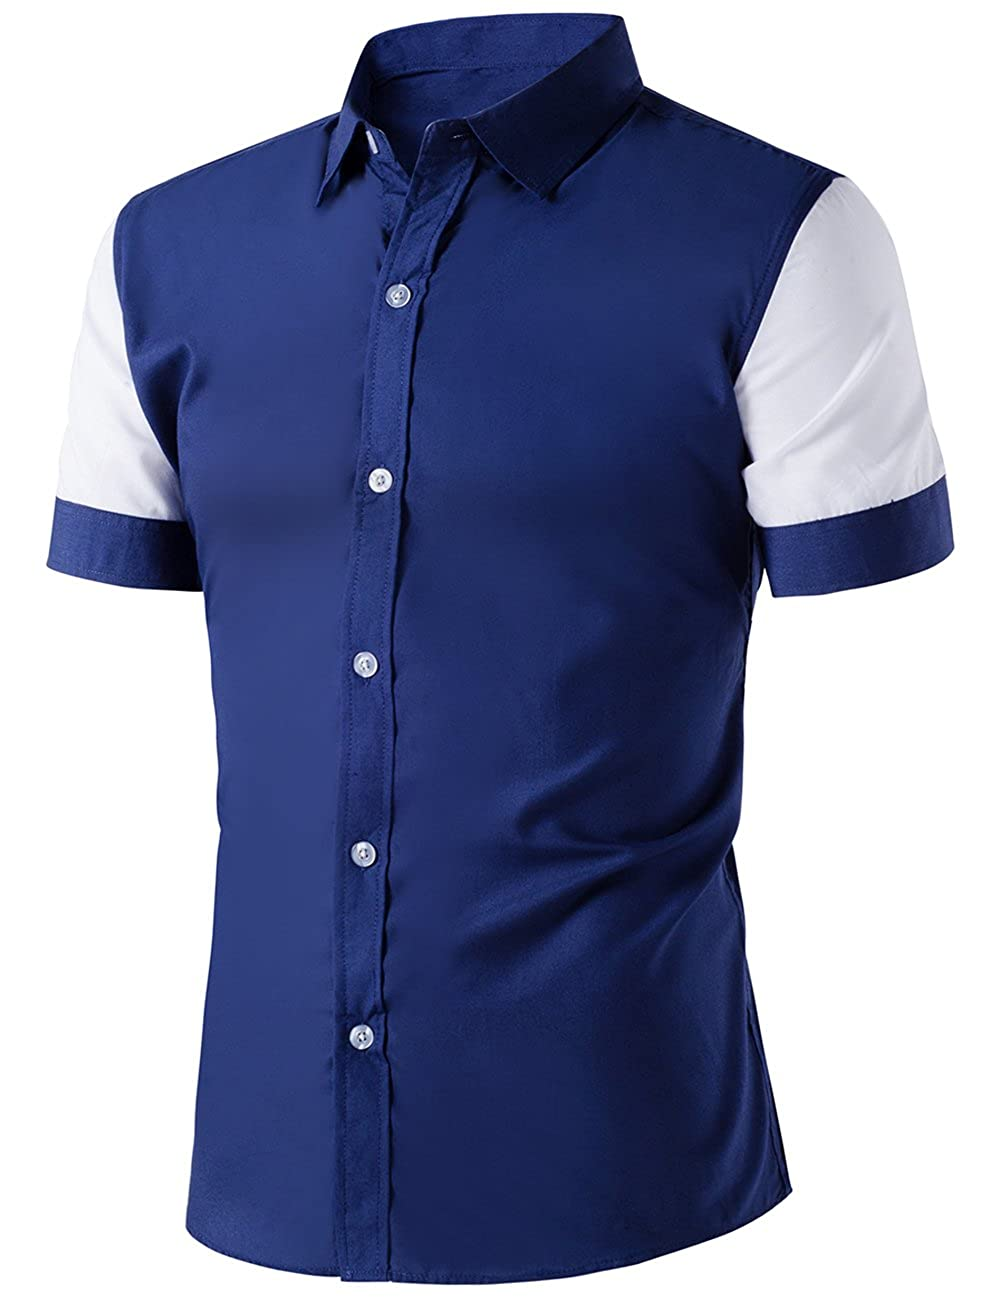 Xi Peng Mens Casual Button Down Contrast Color Short Sleeve Slim